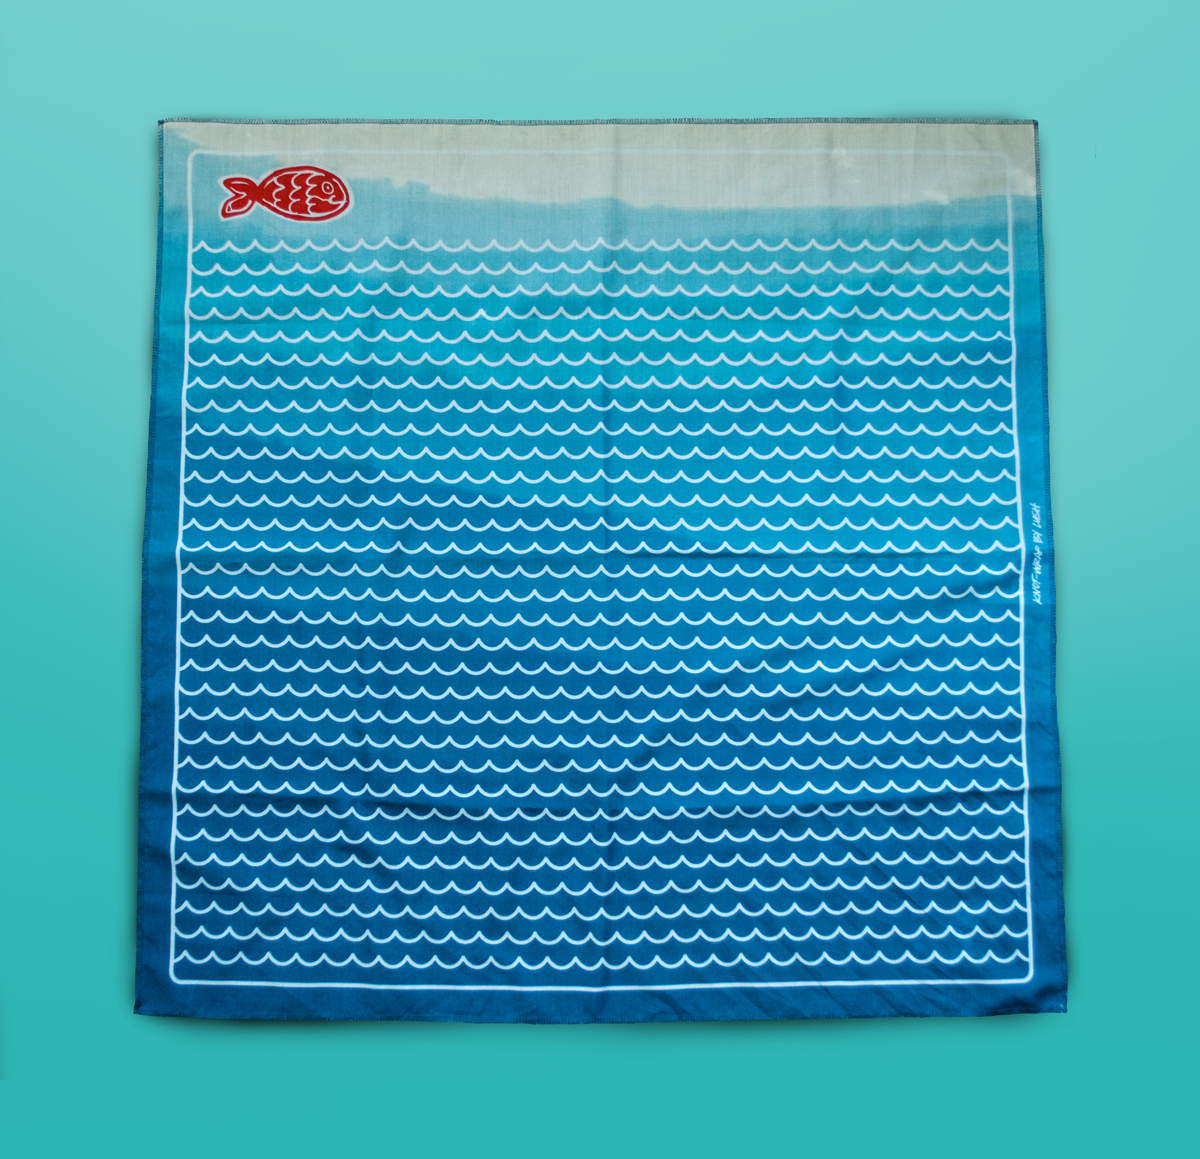 GraemeZirk_Commercial Illustration_Lush Knotwrap.png